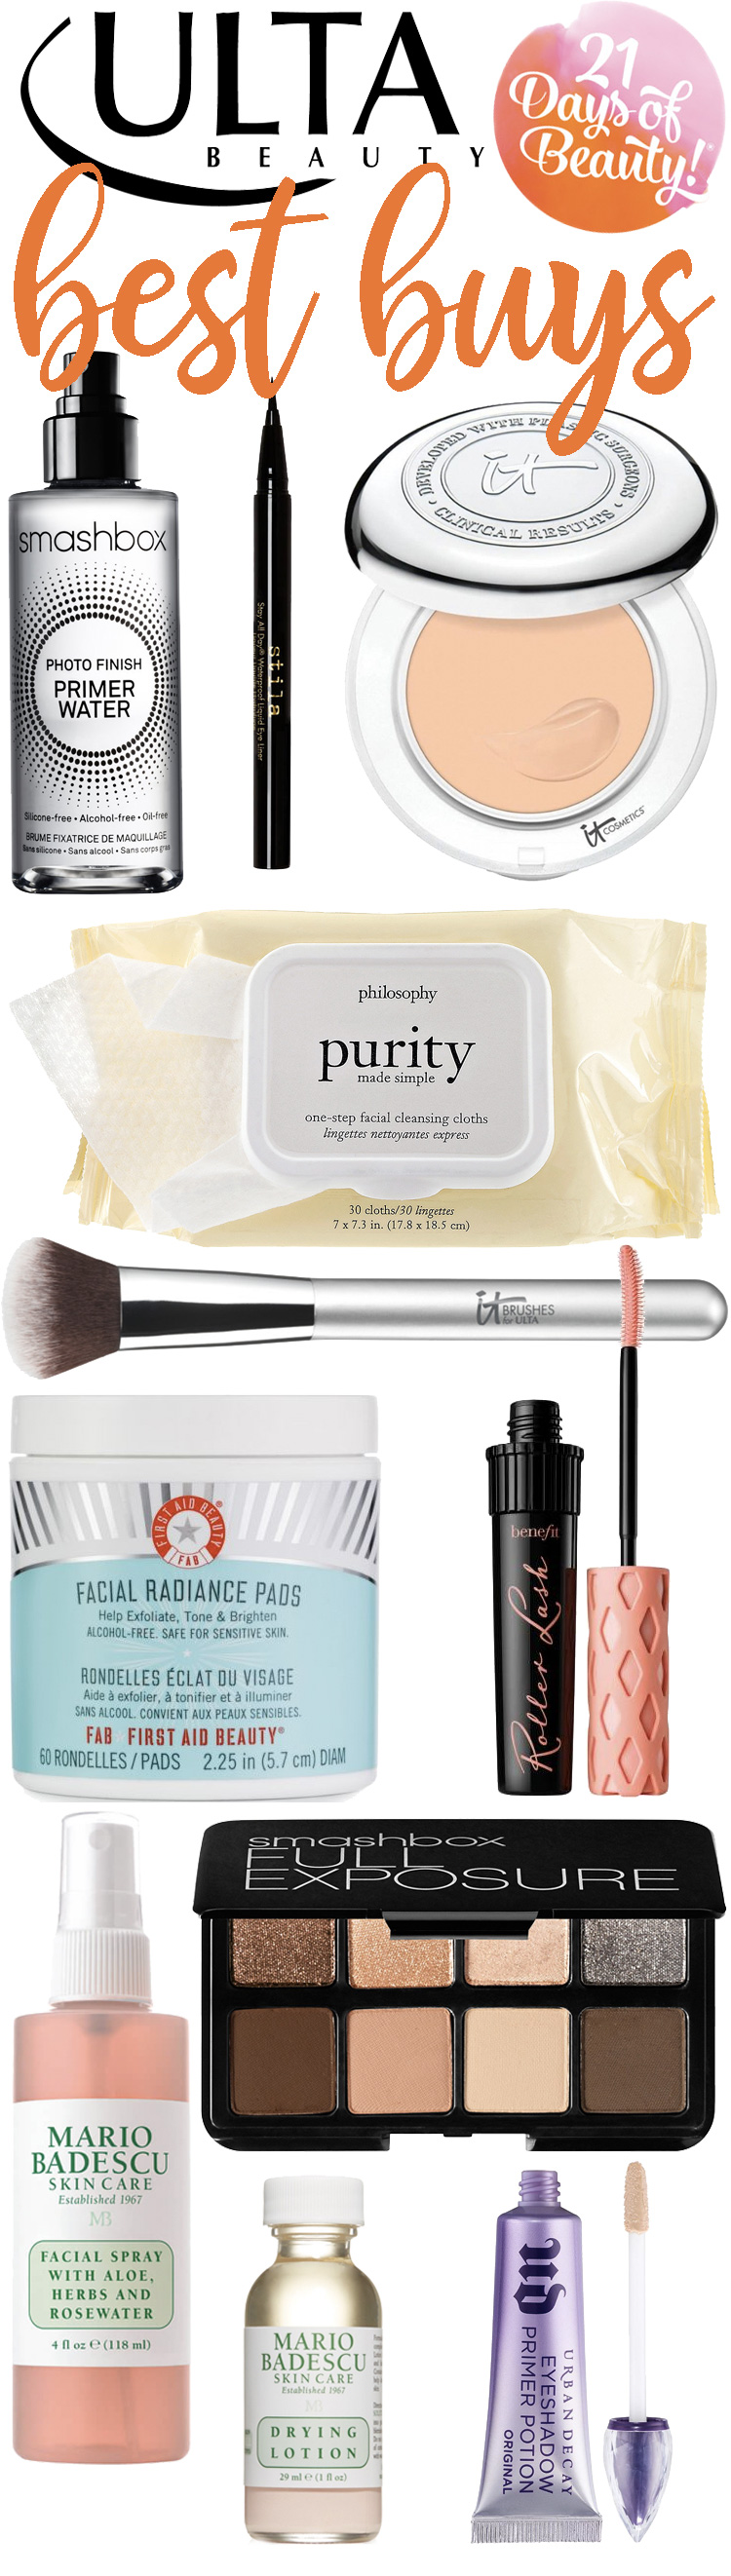 ULTA 21 Days of Beauty Best Buys!